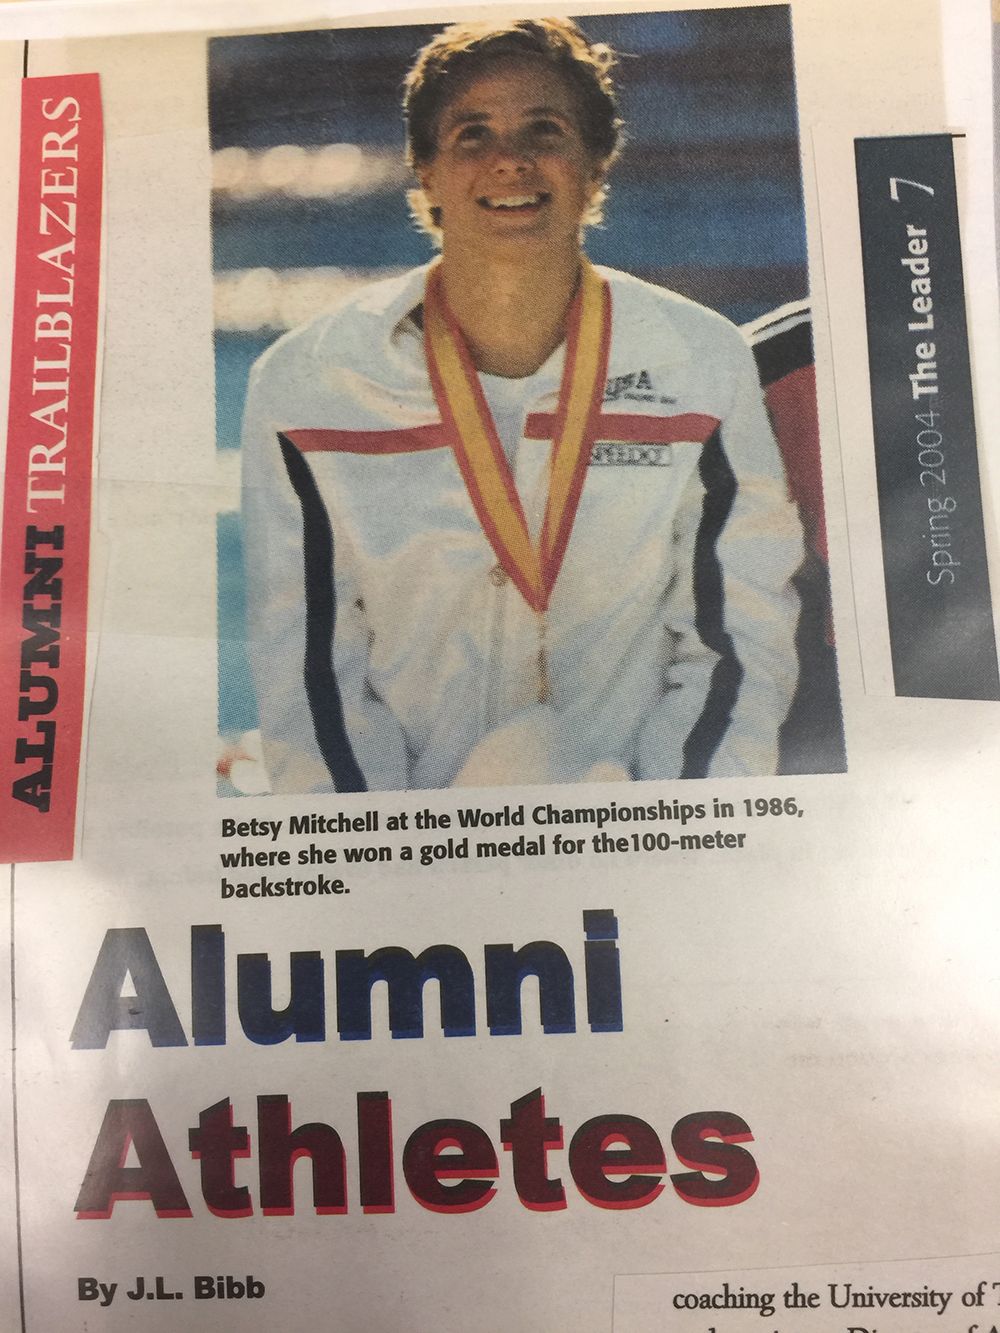 Front page of an article about Betsy's 1986 World Champions gold medal win, in Spain, for the 100-meter backstroke.